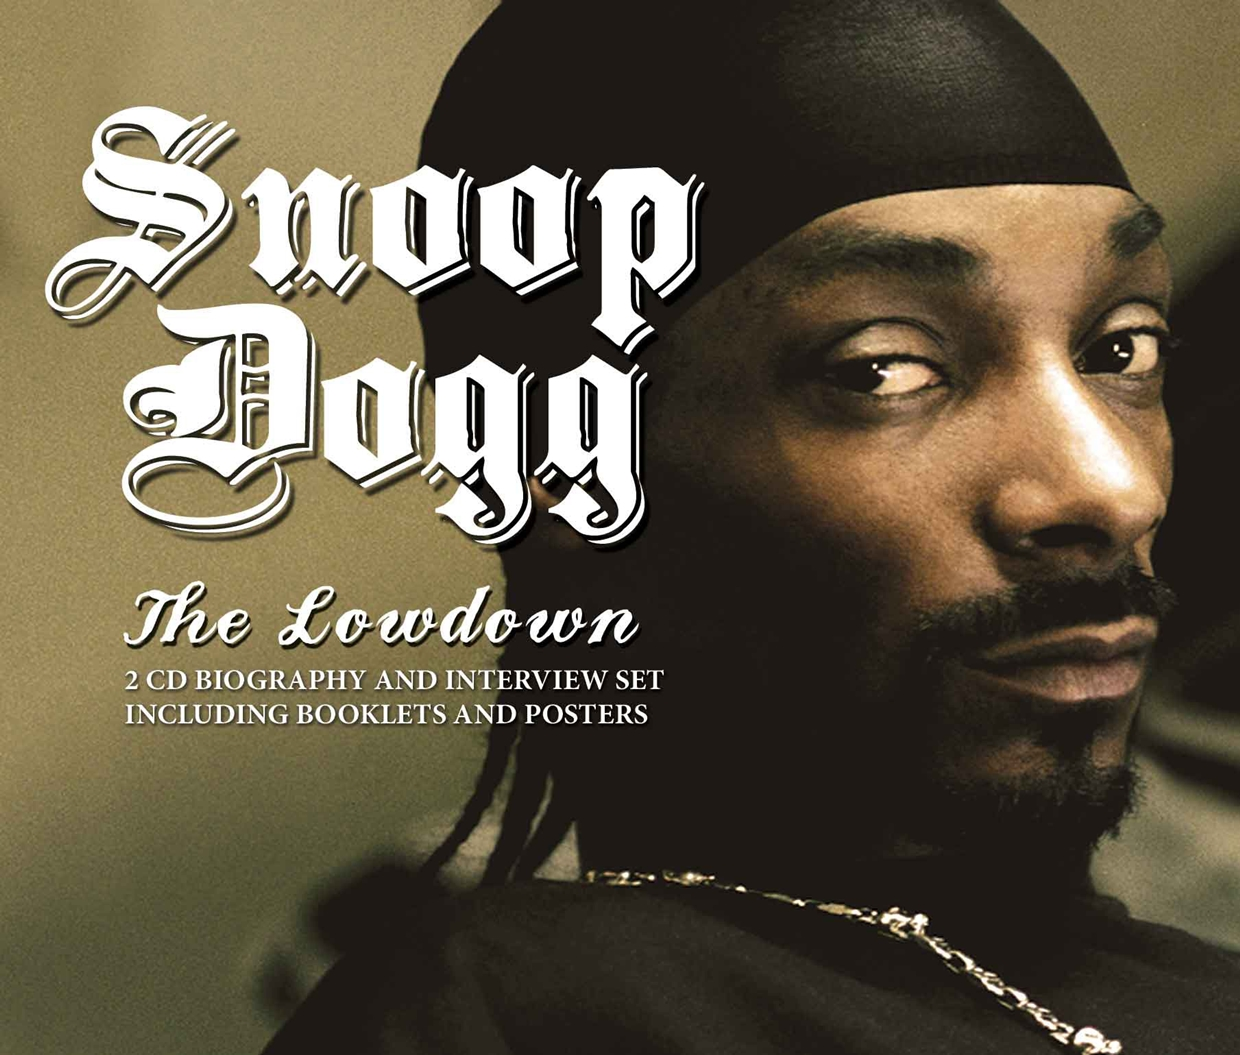 Snoop Dogg The Lowdown Compact Disc Double